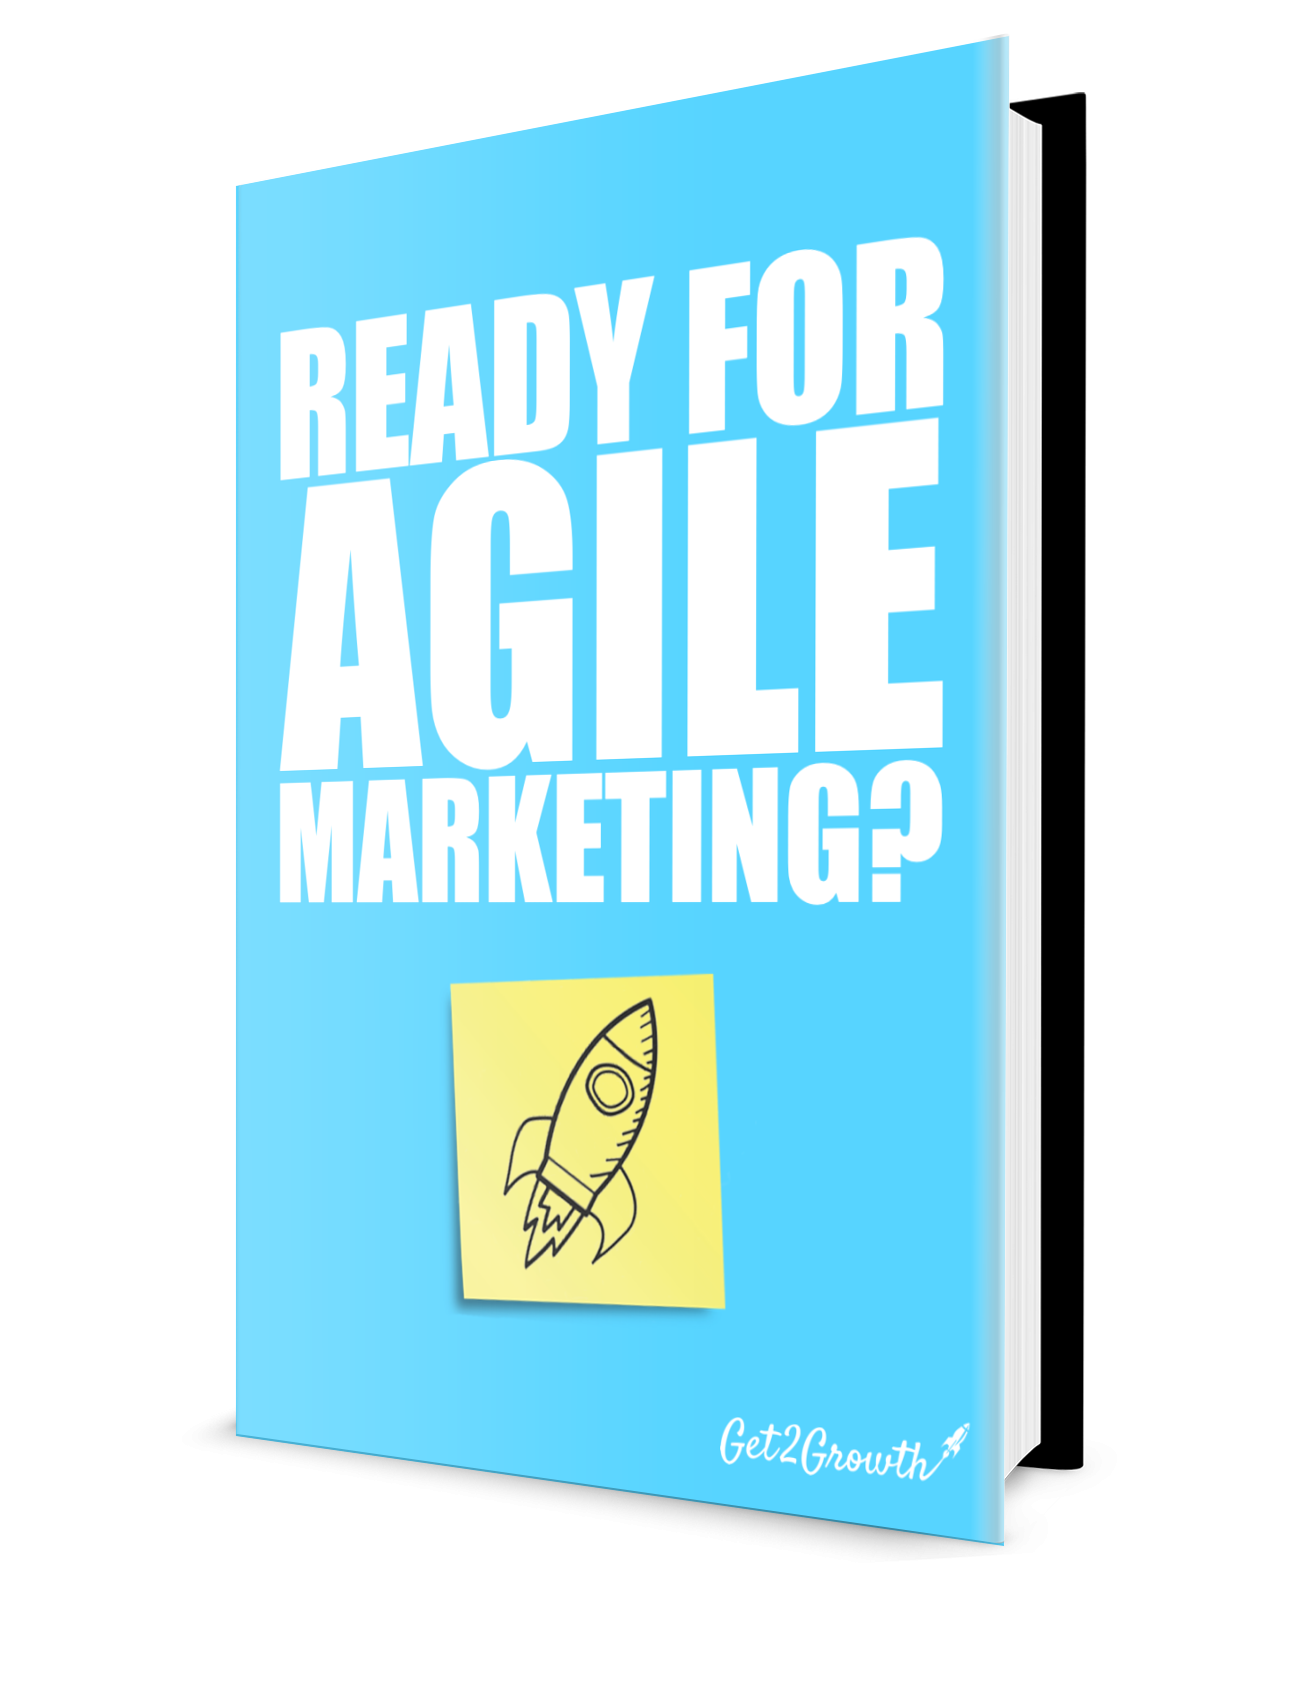 Ready For Agile Marketing?